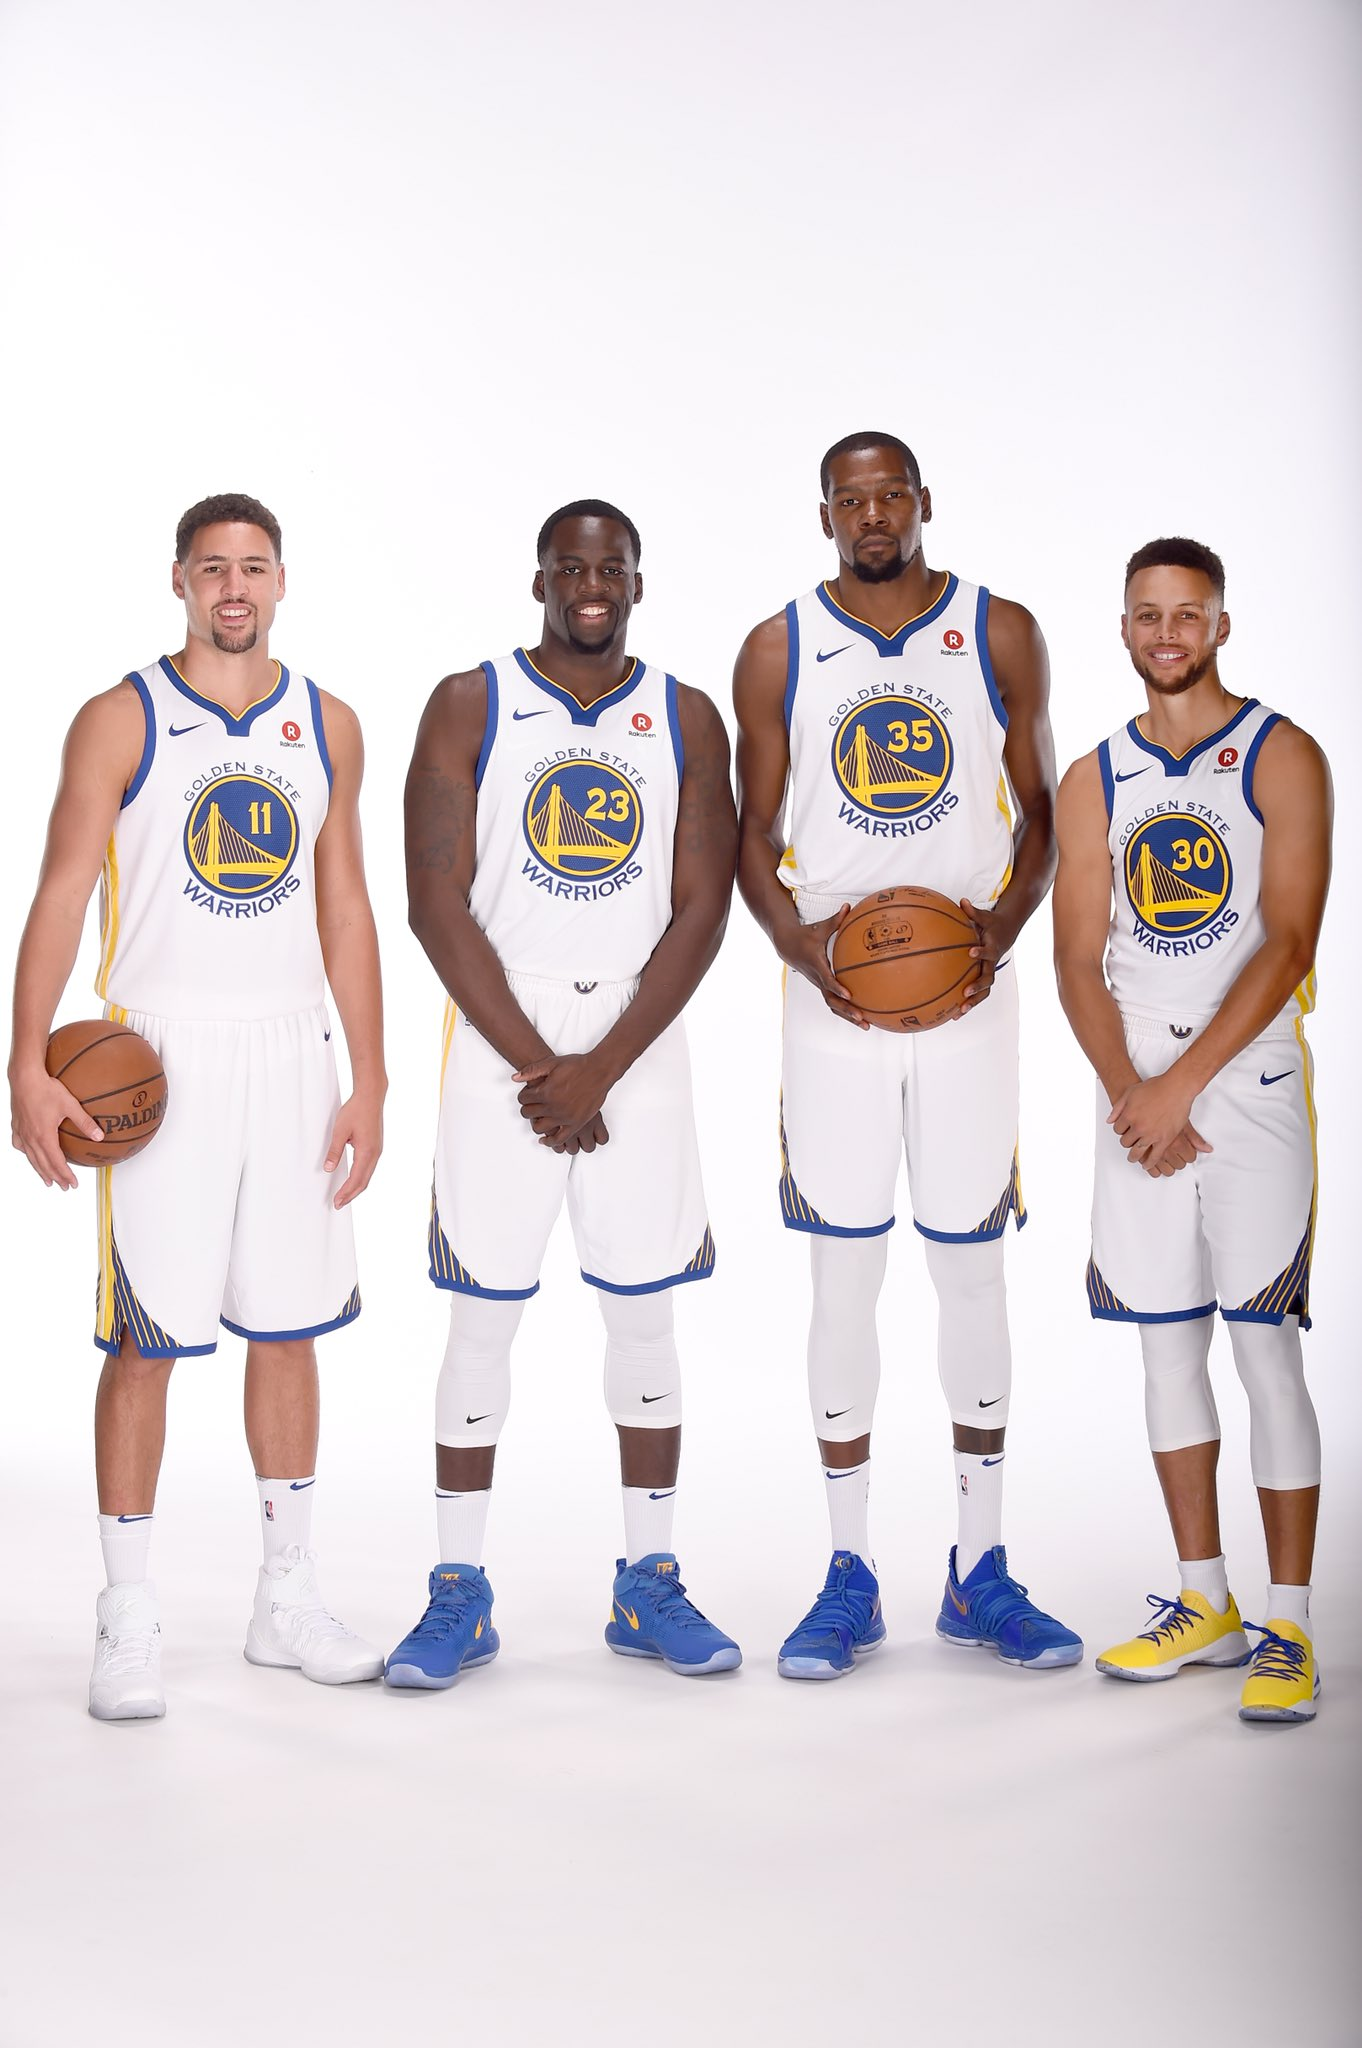 The CHAMPS are BACK!   #NBAMediaDay #GSWMediaDay https://t.co/zZBTrjhr7l